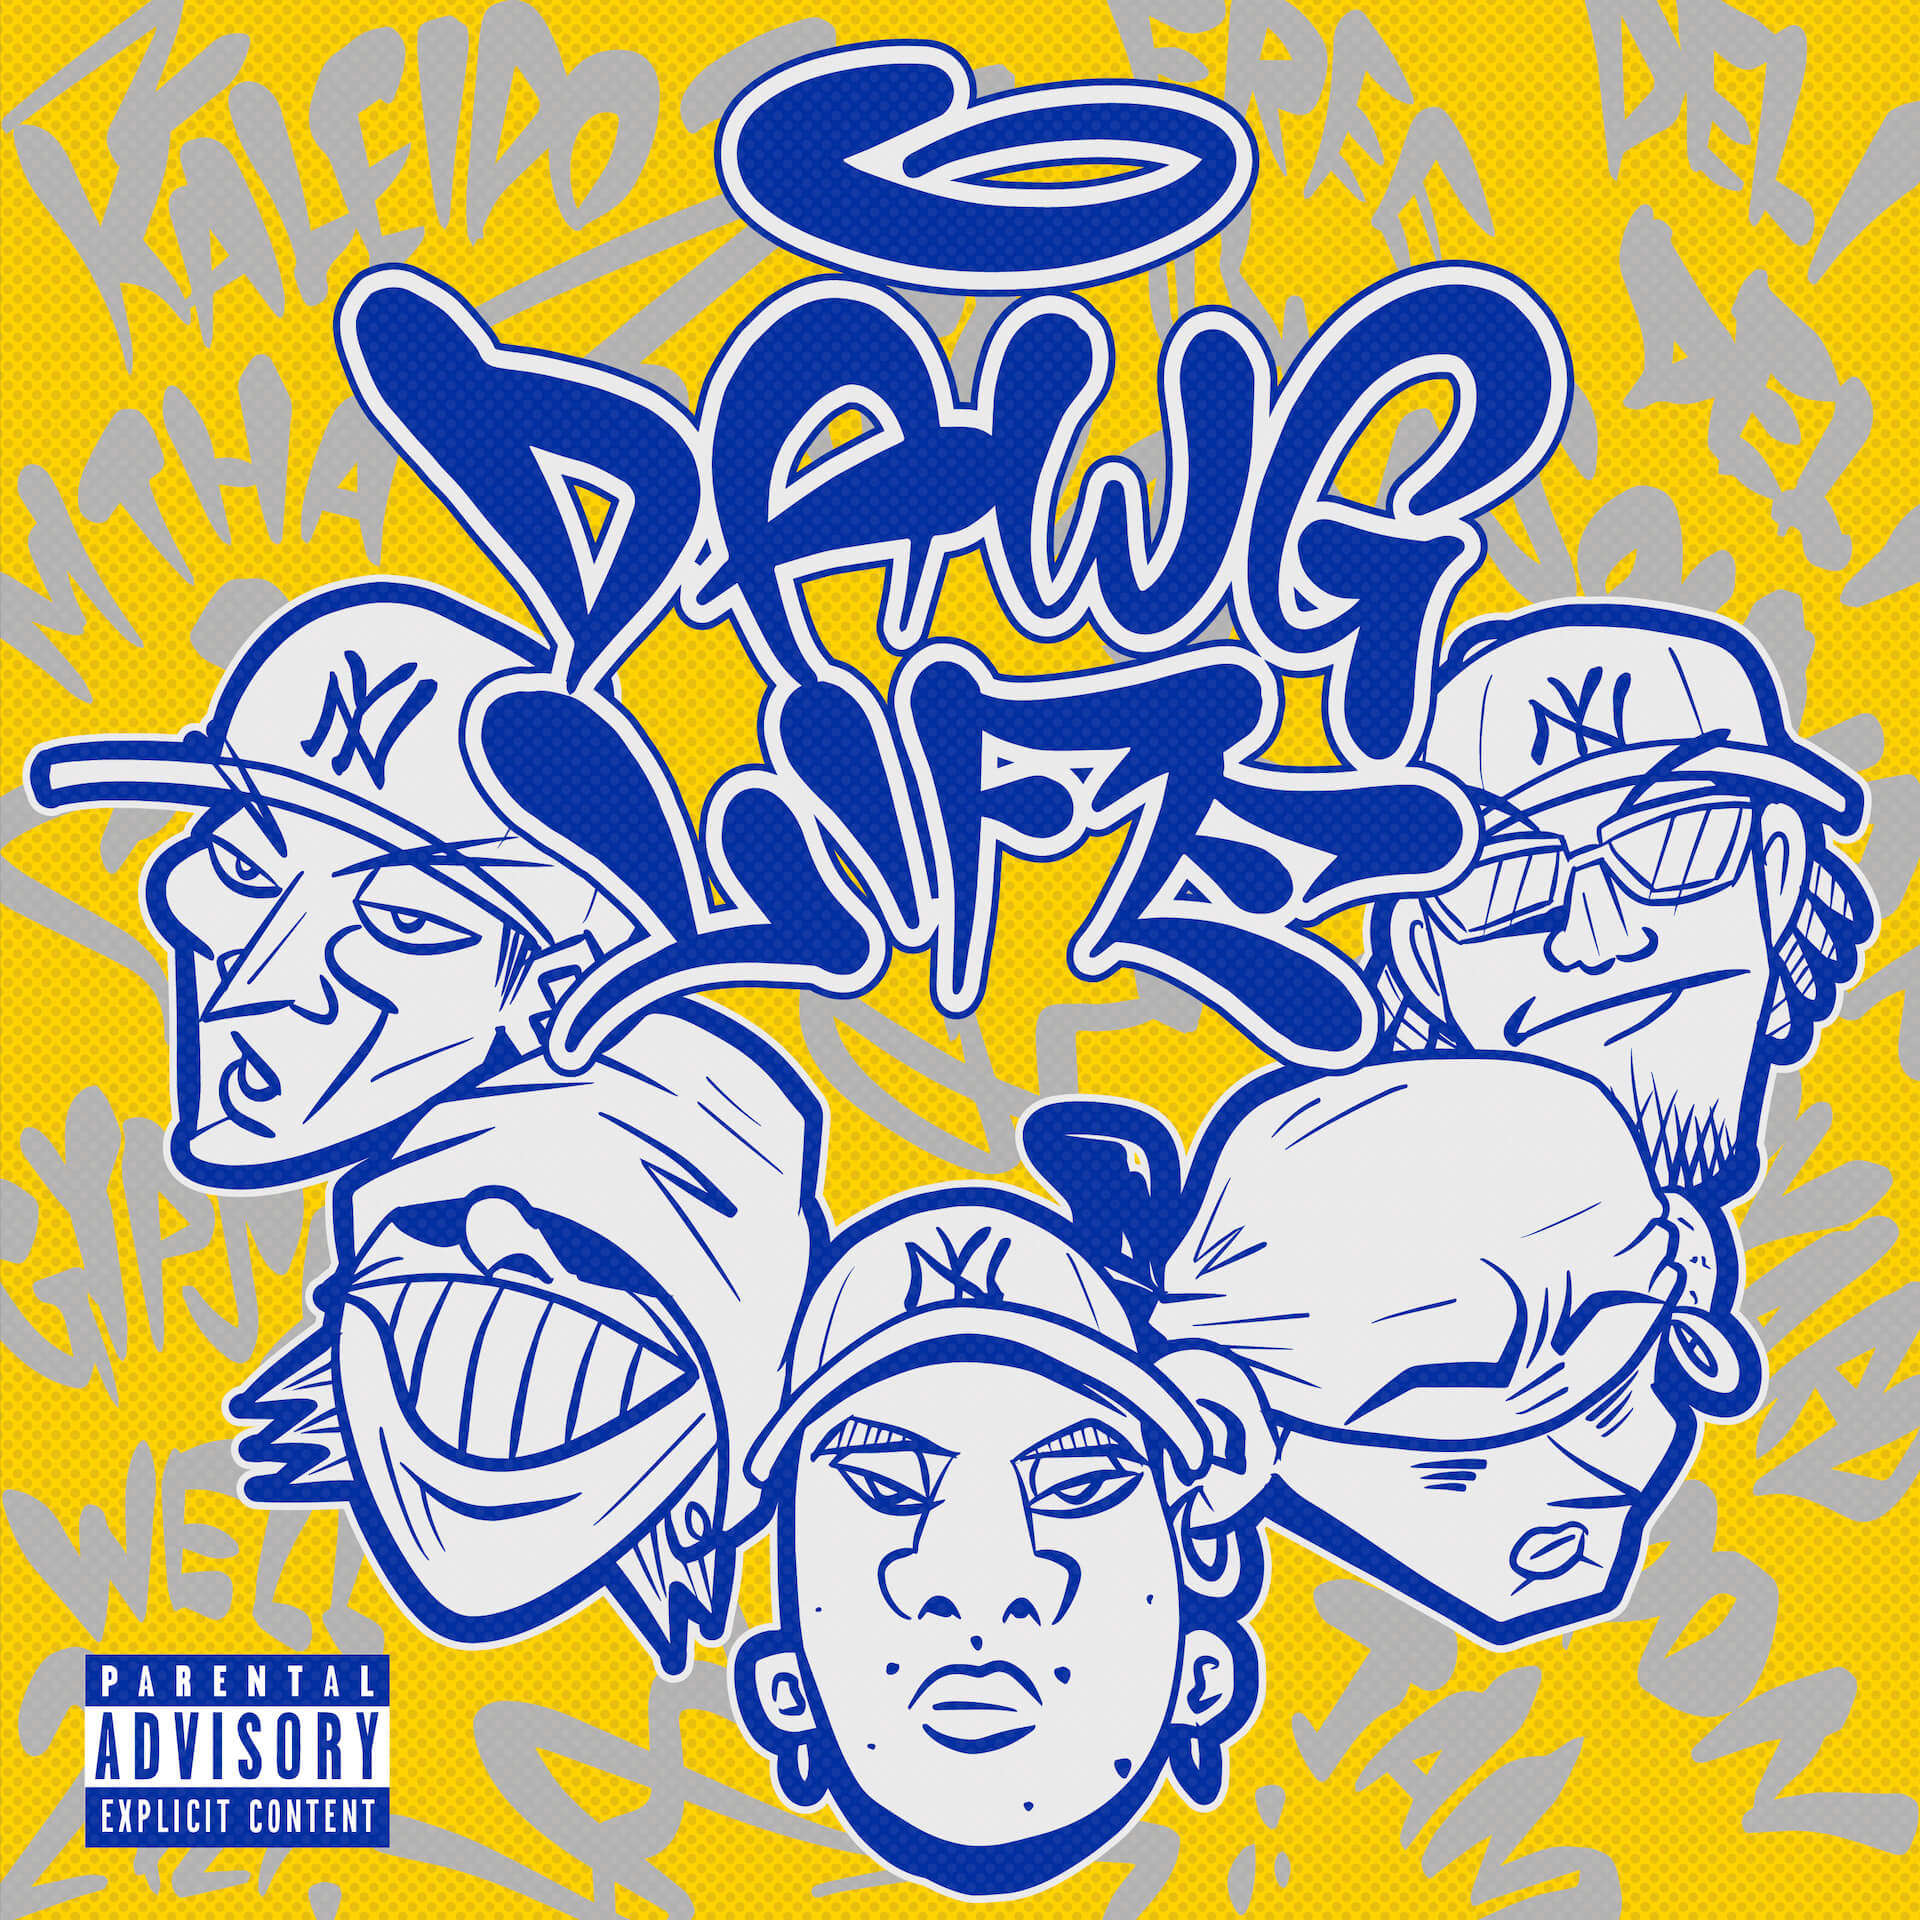 """Sounds' Deliの1stアルバムより新曲""""DAWG LIFE FREE STYLE""""がリリース決定!MESSが手がけたMVも公開 music210615_soundsdeli_1"""